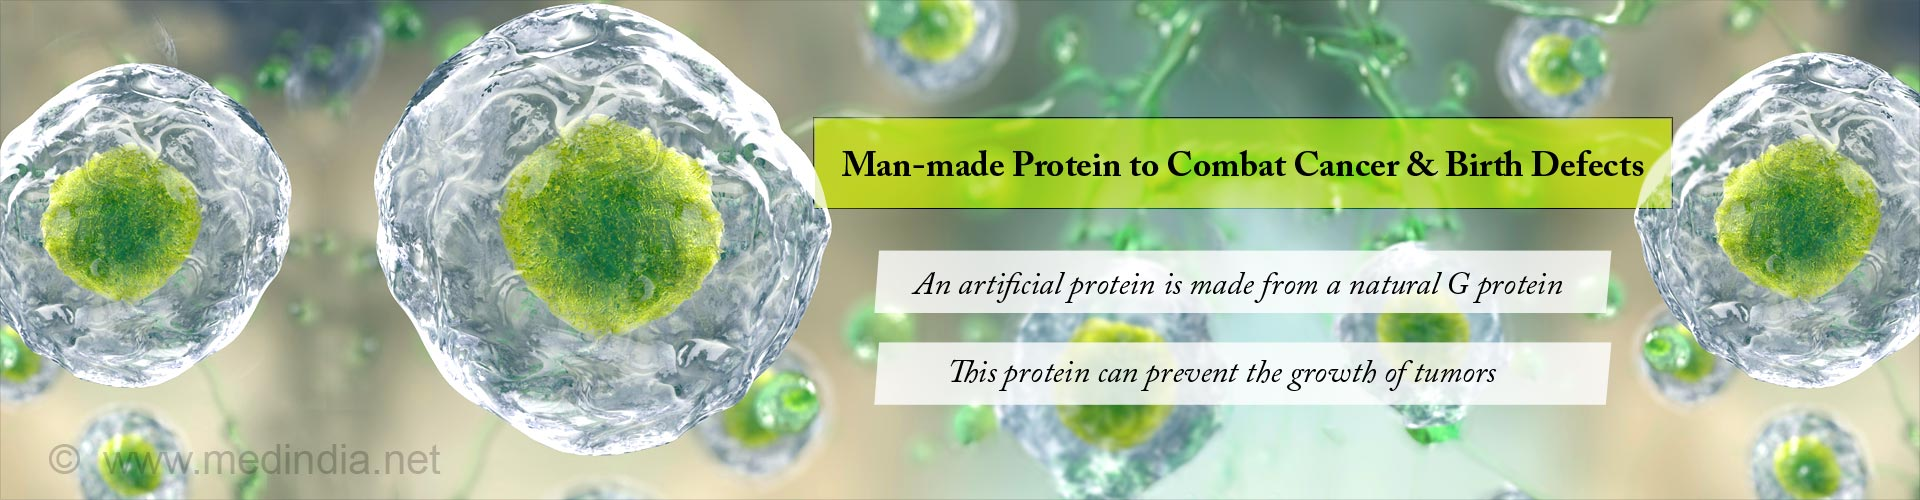 man-made protein to combat cancer & birth defects